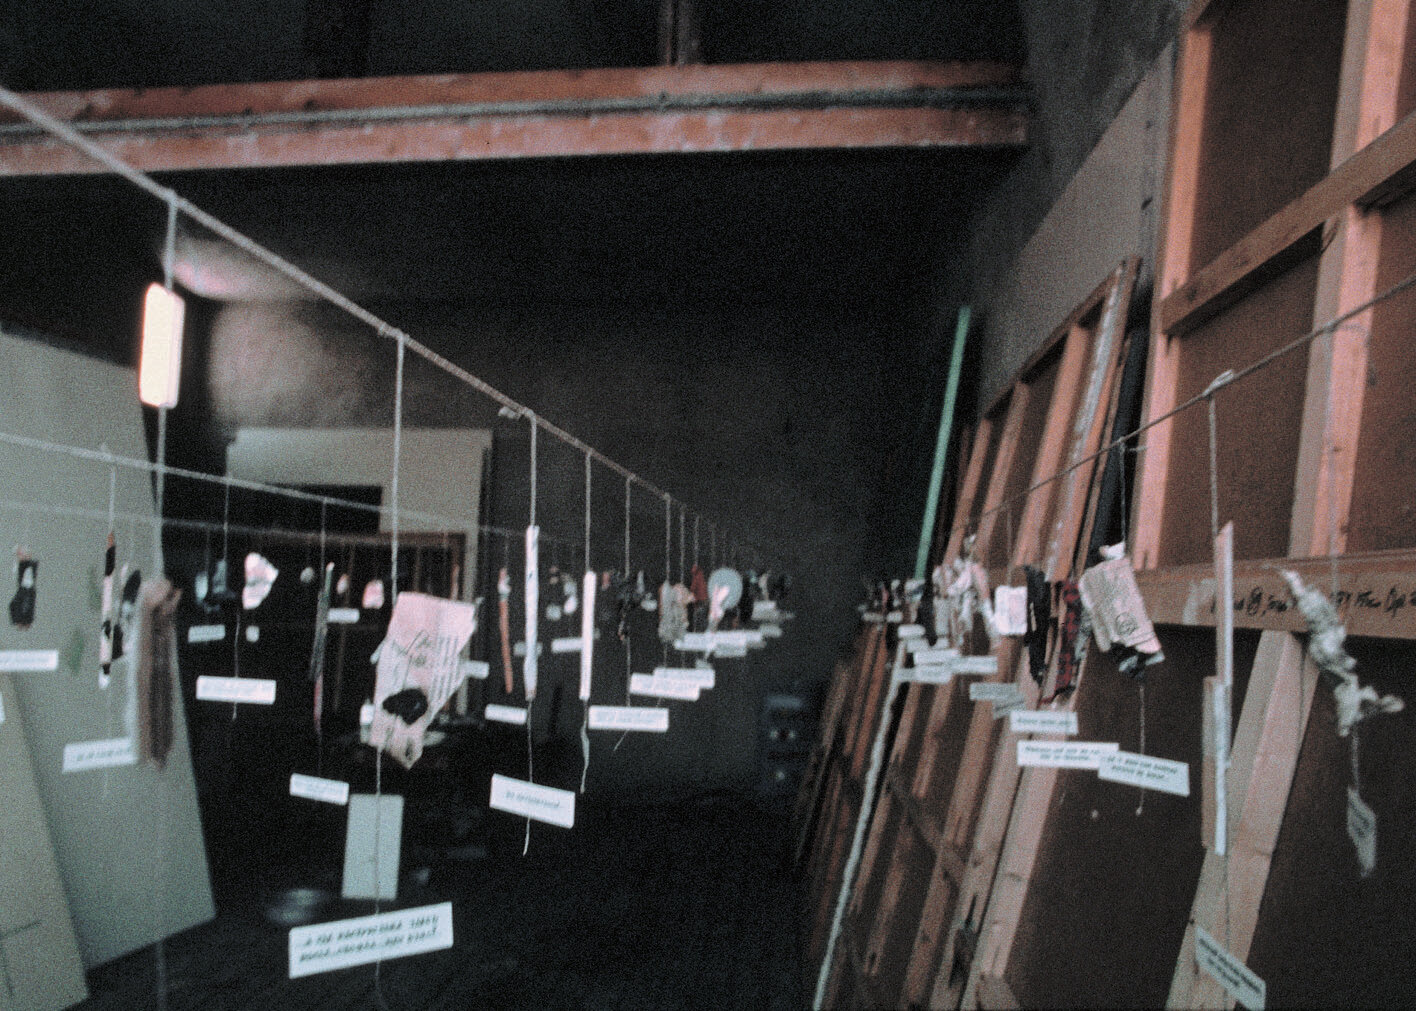 View-of-installation-Moscow-studio-1984-Photo-by-Ilya-Kabakov.jpg